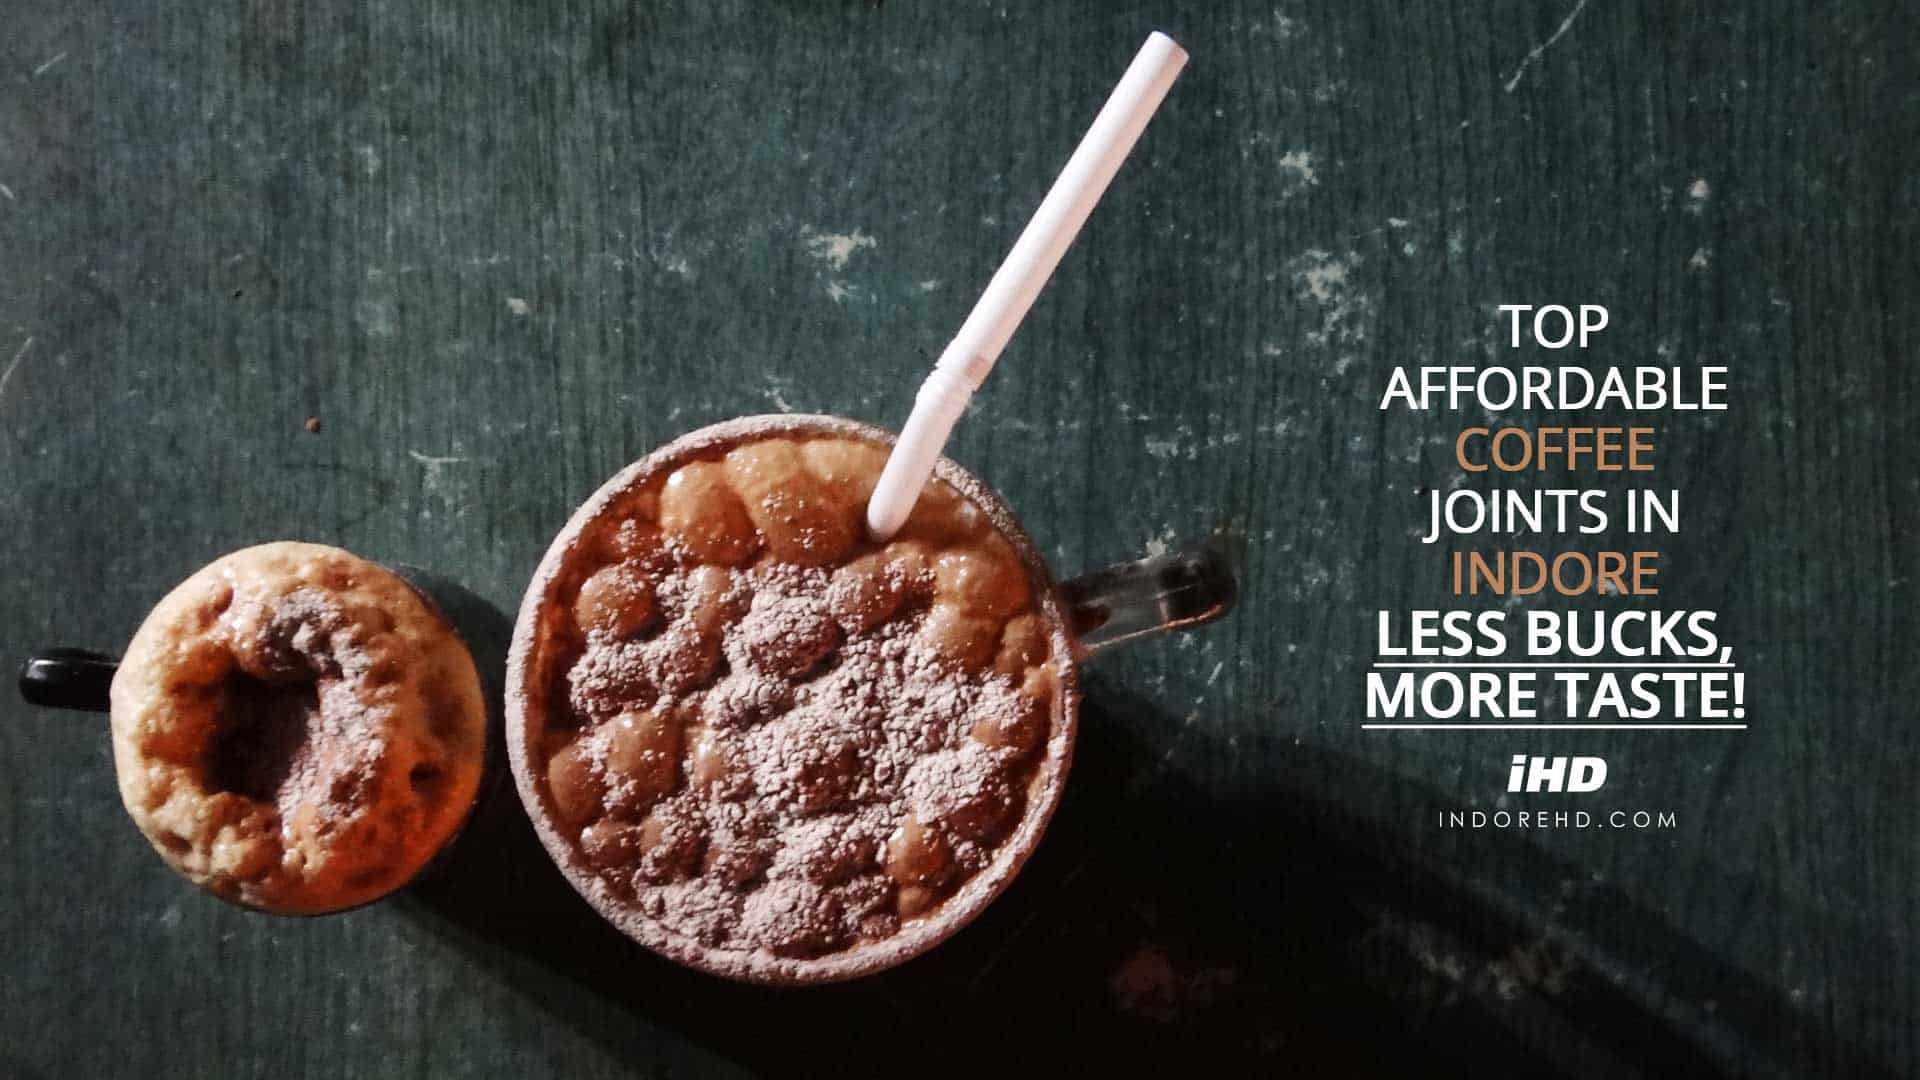 Top-Affordable-Coffee-Joints-In-Indore-indoreHD